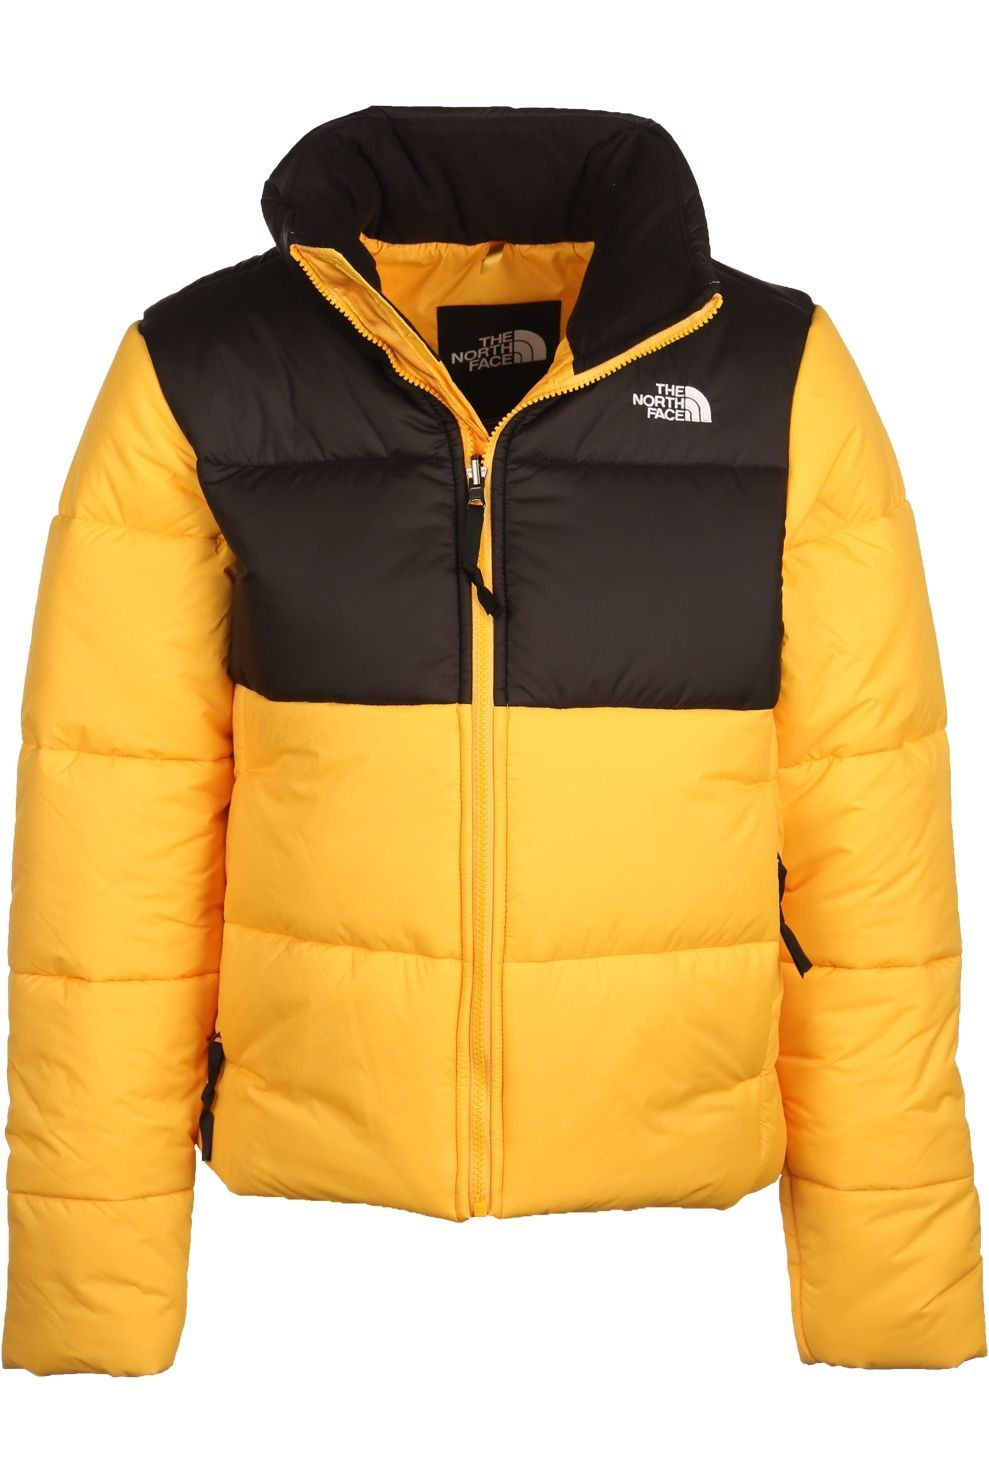 The North Face Jas Saikuru voor dames – Geel – Maten: S, M, L